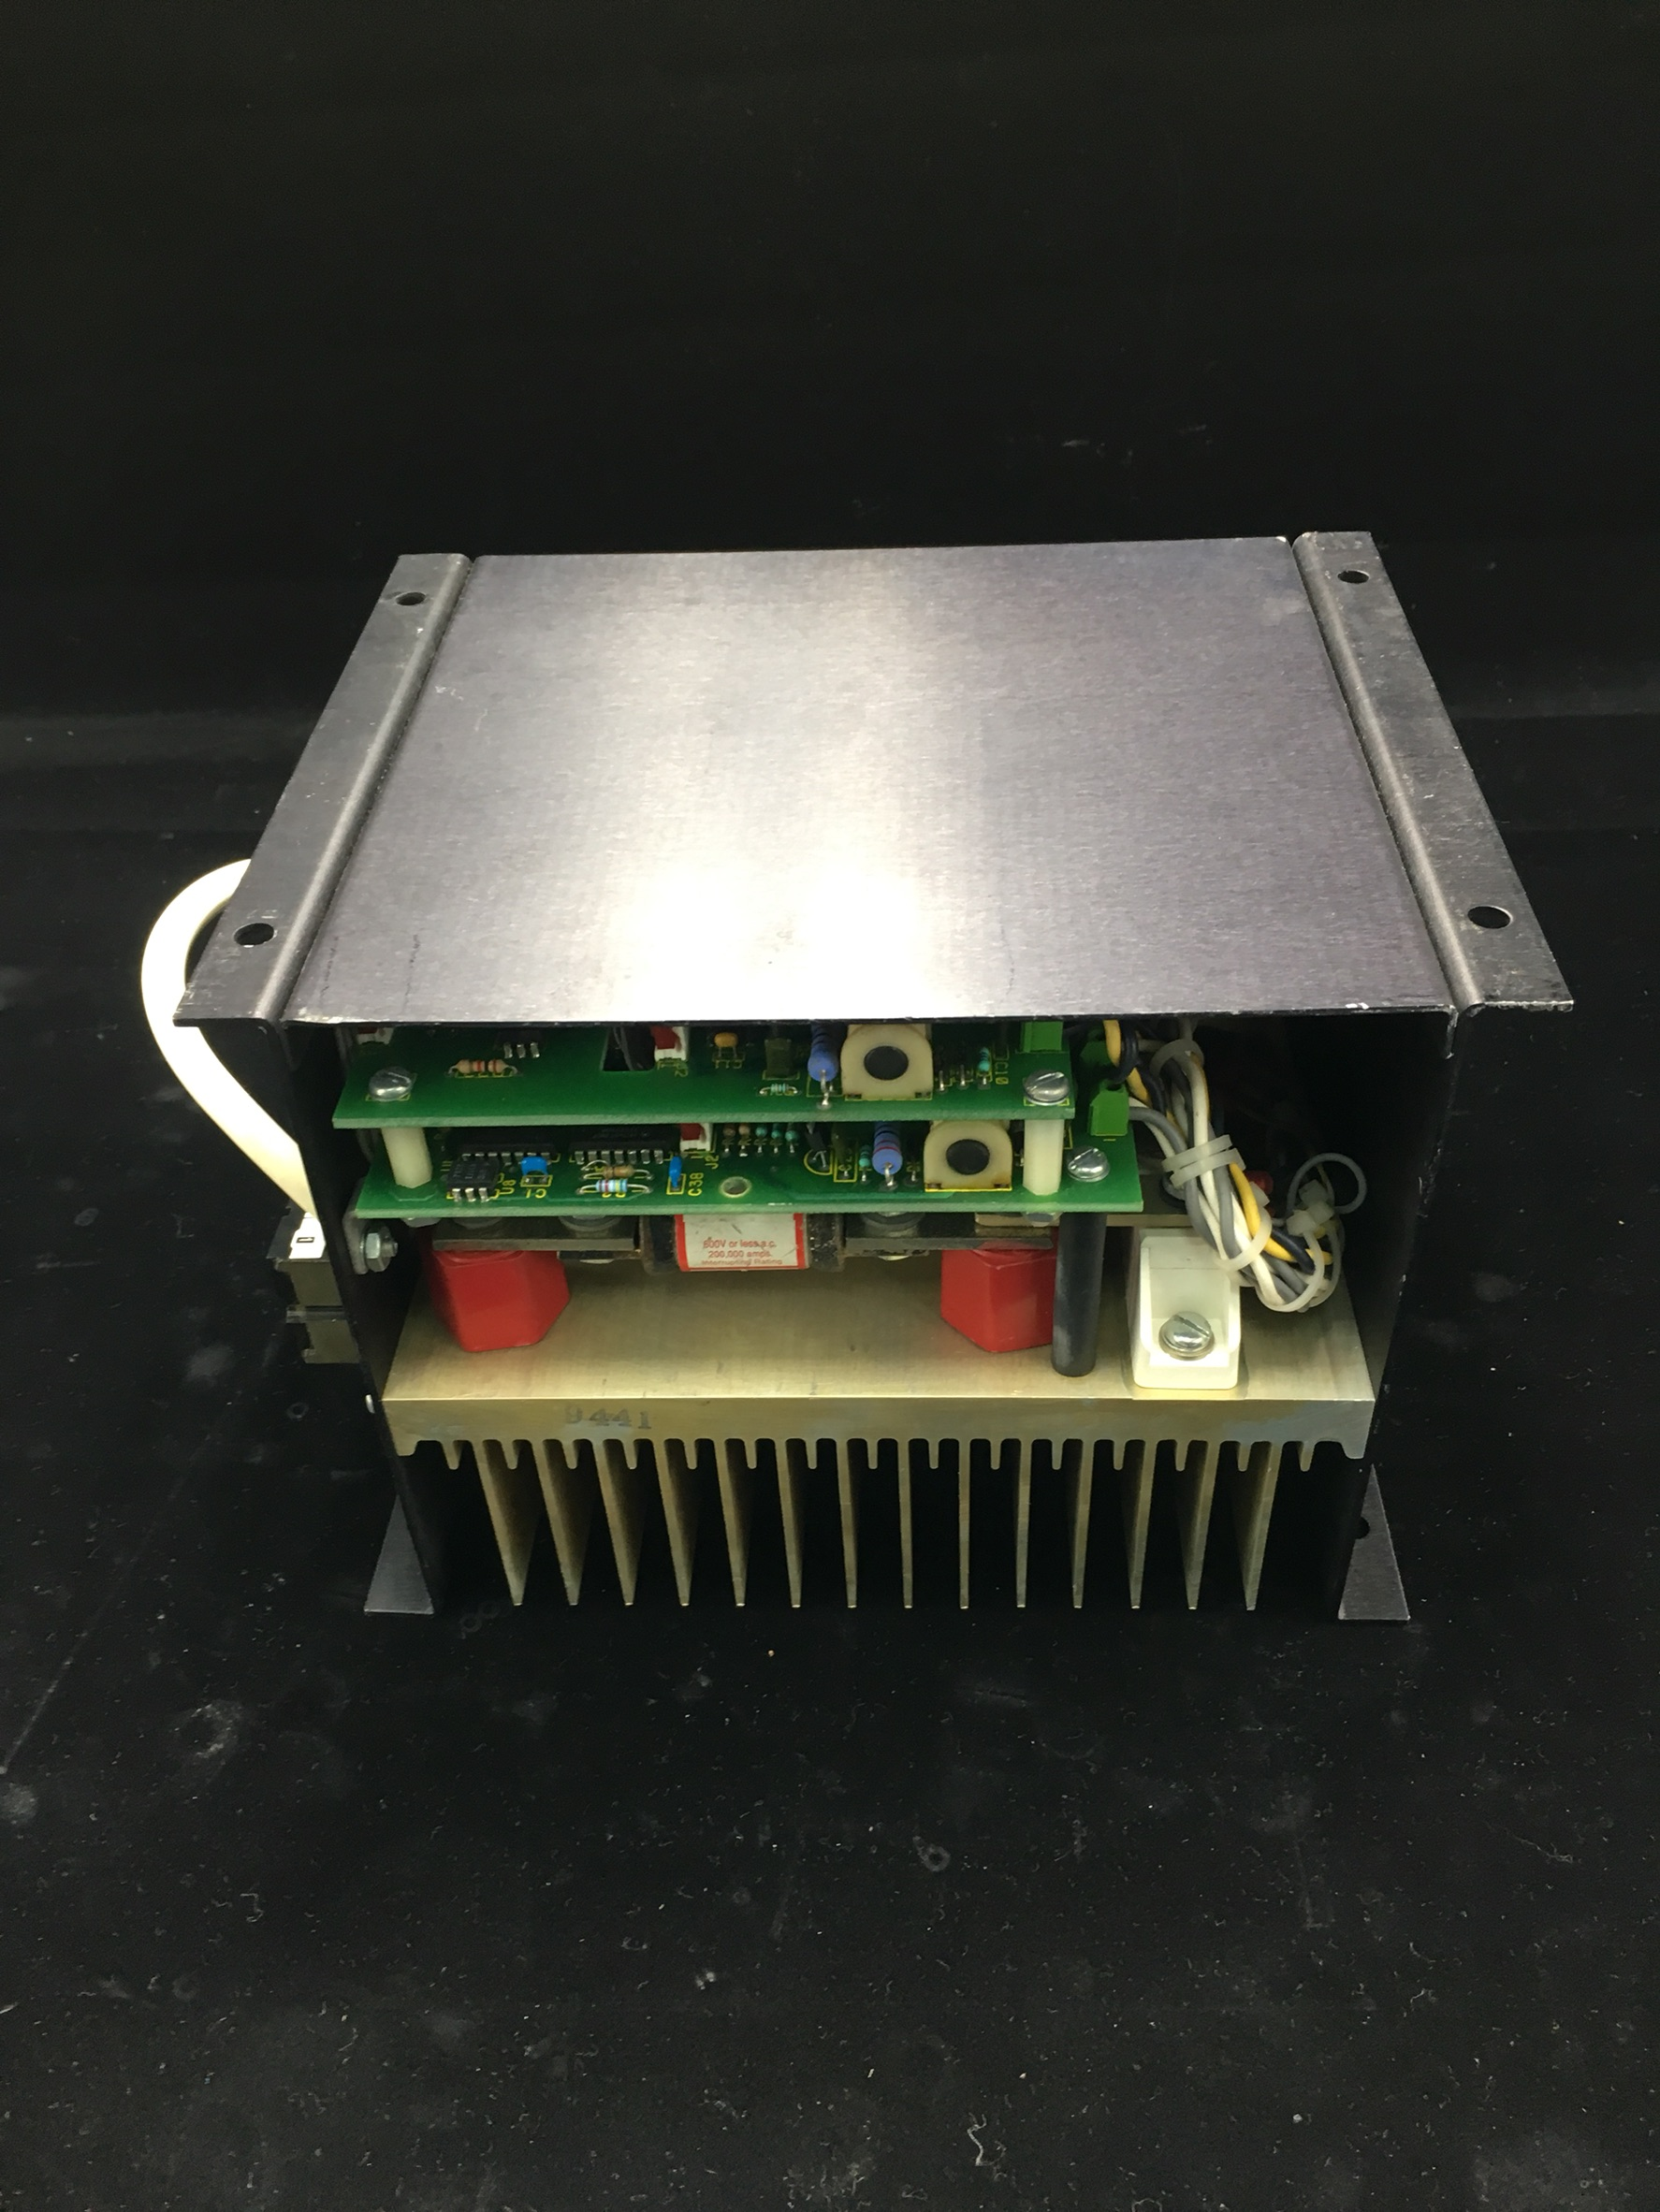 AMAT Applied Materials AMI 0015-09091 Phasetronics MCVD Lamp Driver